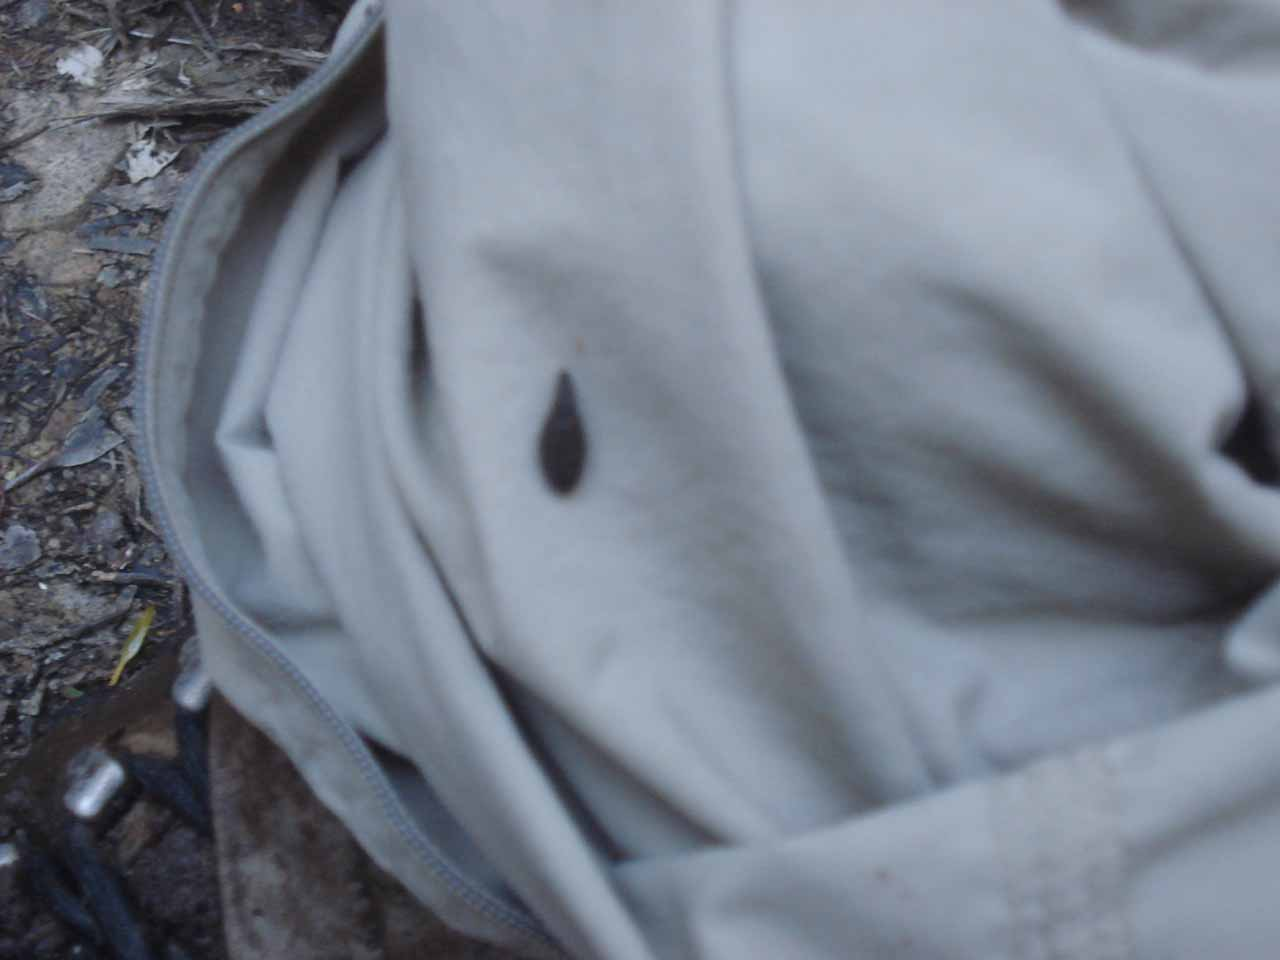 That blurry blotch on my hiking pants was actually a leech that managed to take some blood from me